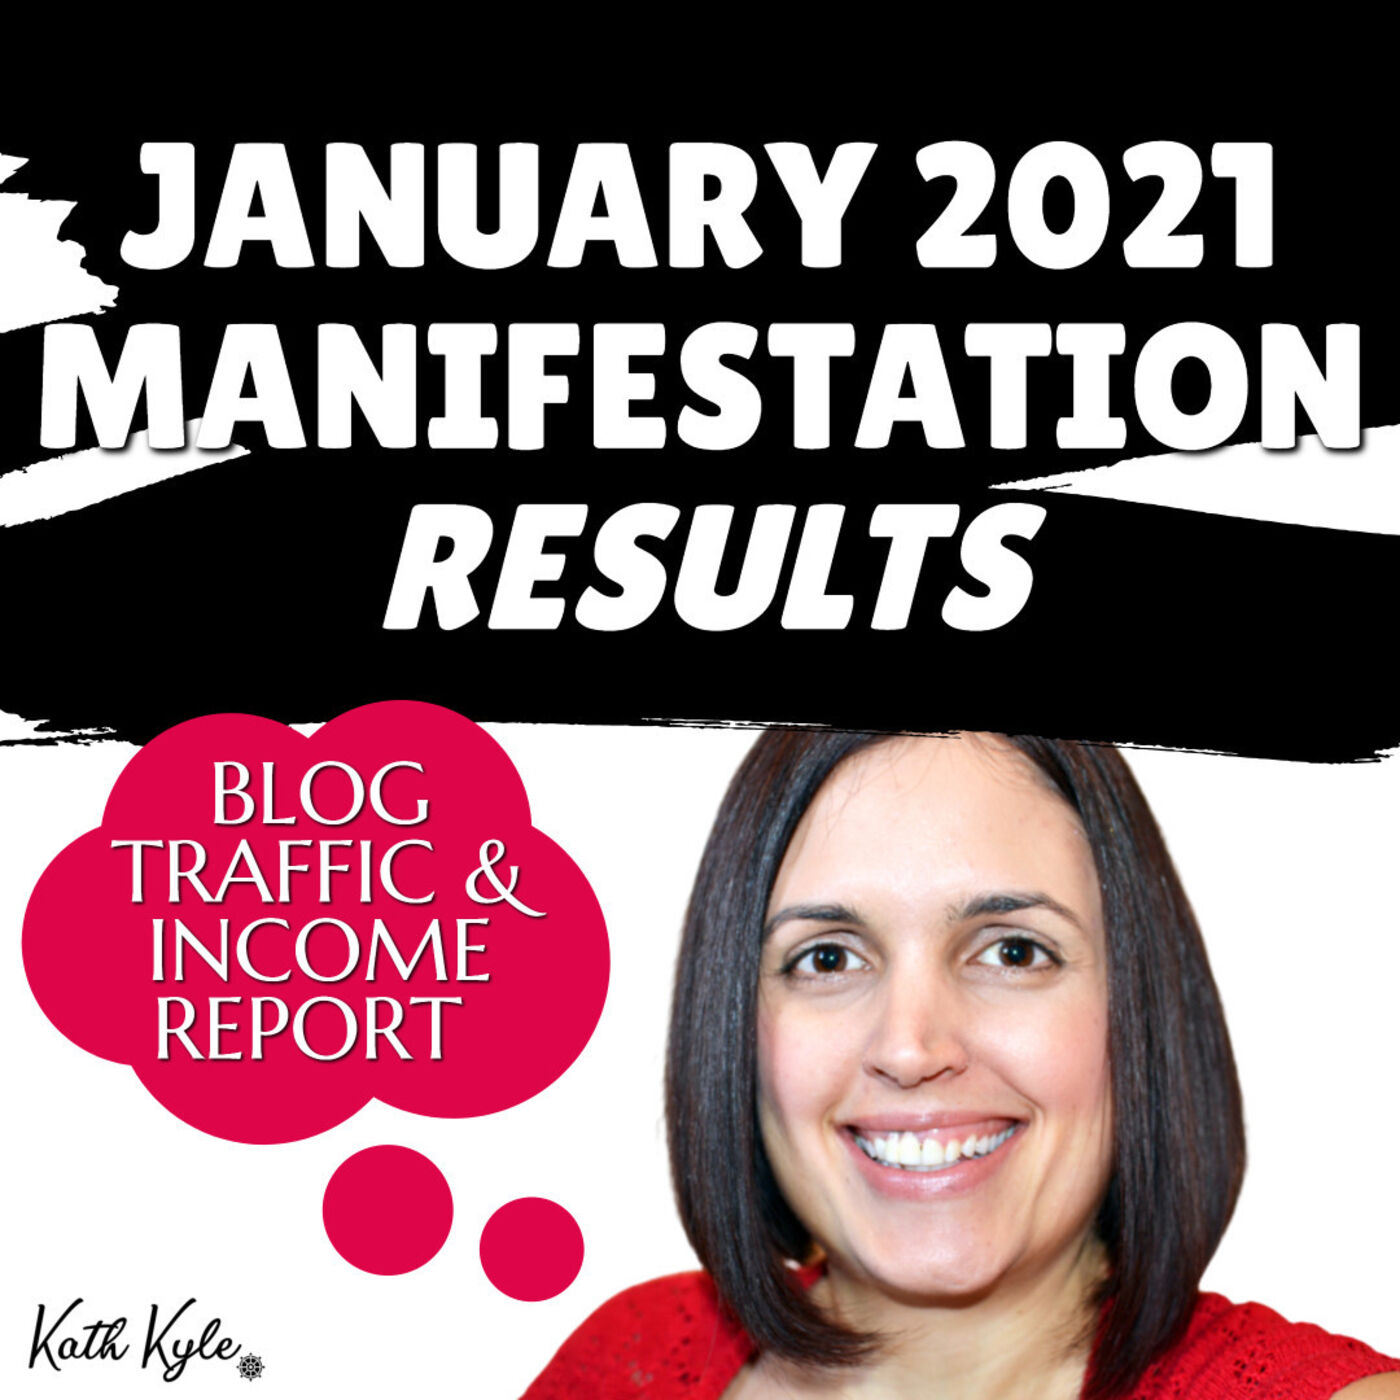 January 2021 Manifestation RESULTS: Blog Traffic & Income Report